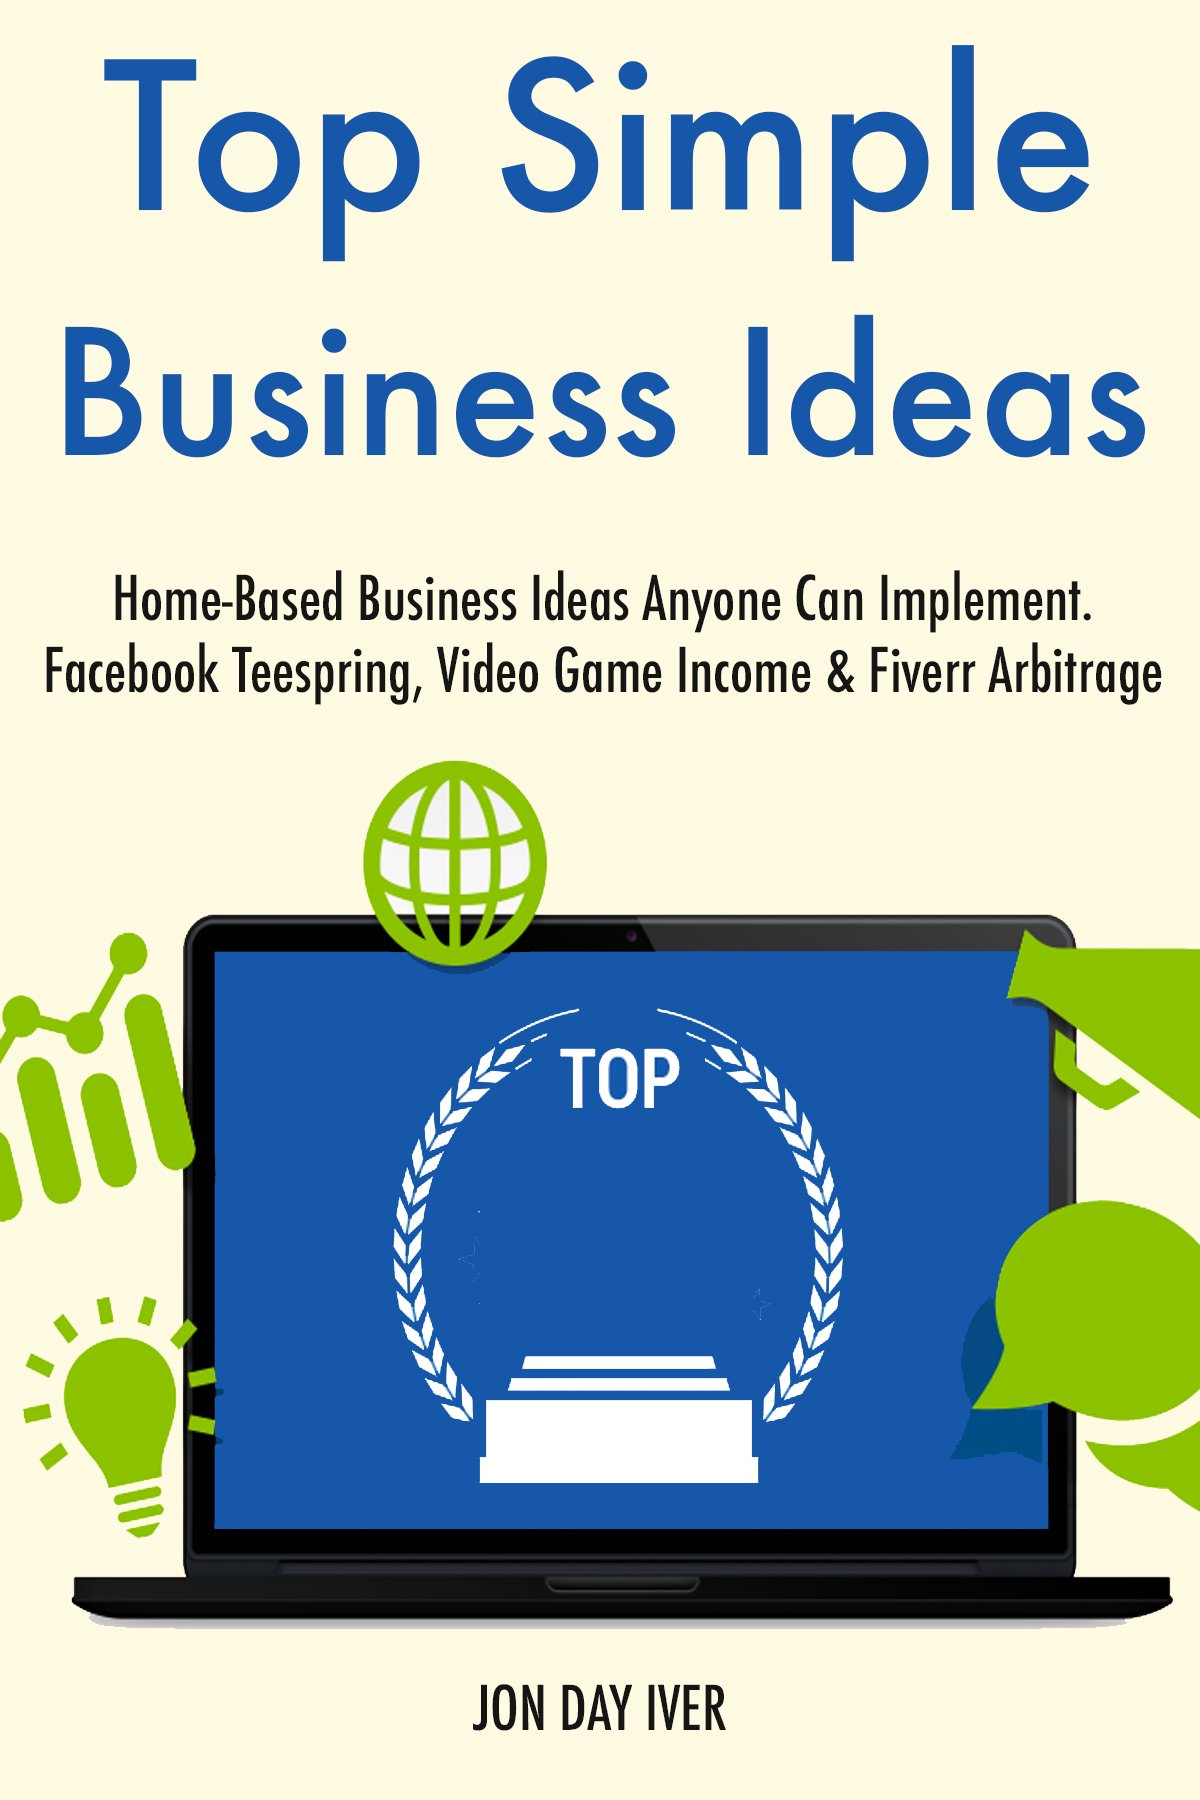 Top Simple Business Ideas (2017): Home-Based Business Ideas Anyone Can Implement. Facebook Teespring, Video Game Income & Fiverr Arbitrage